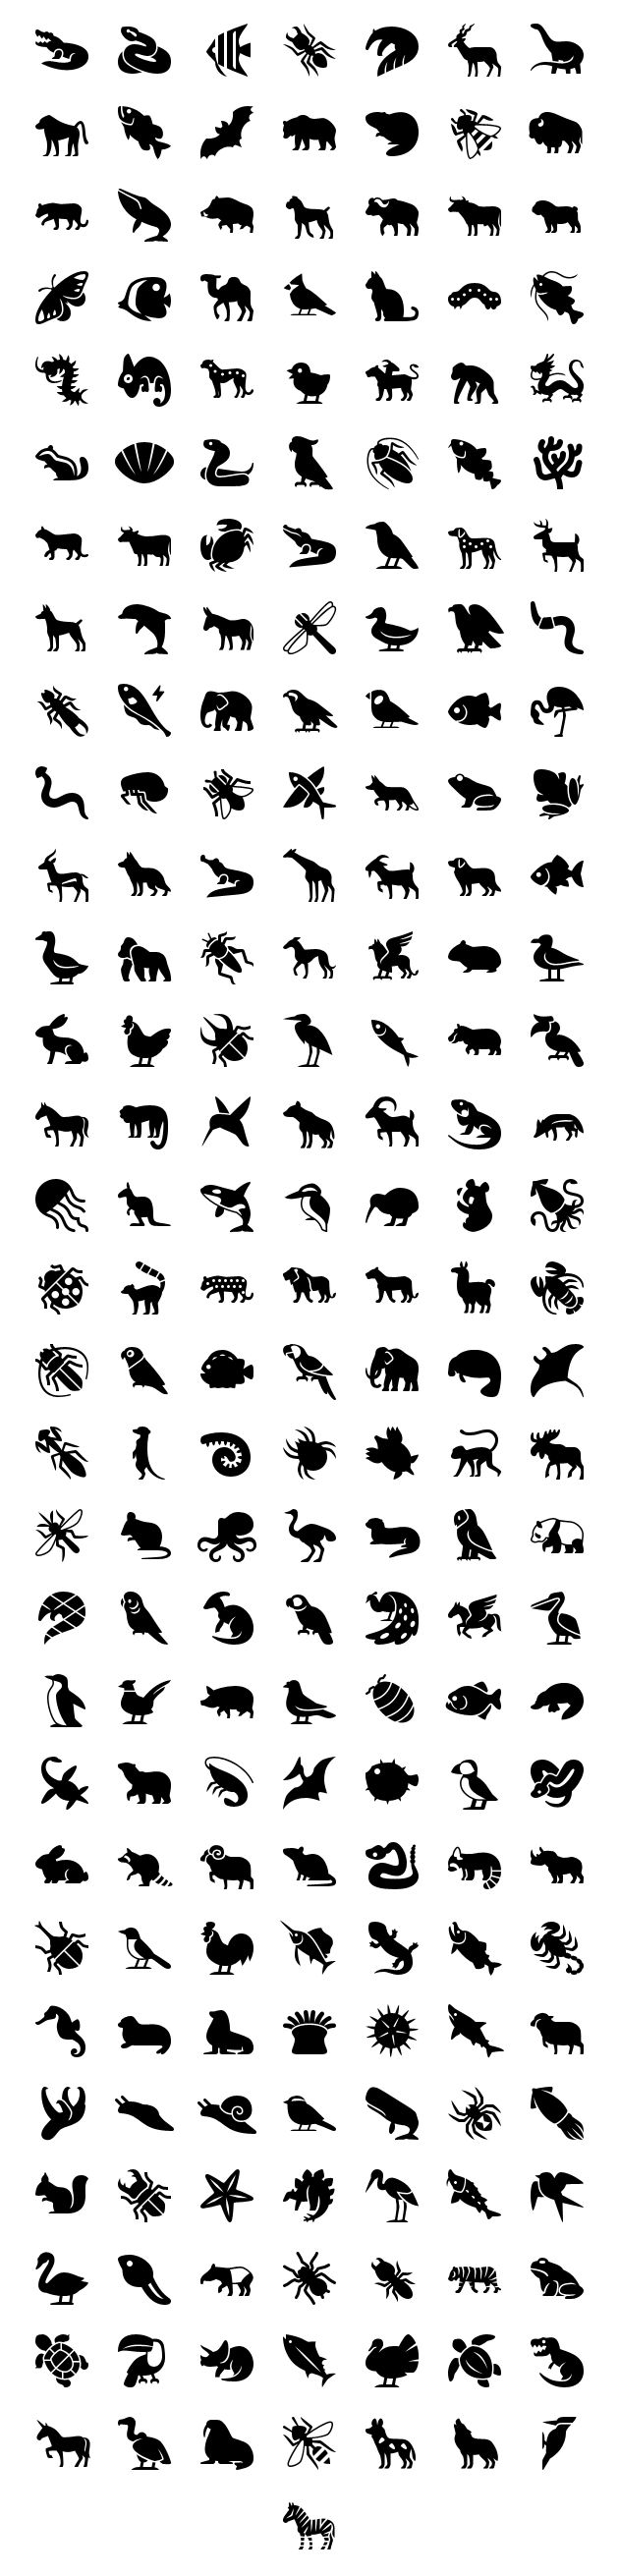 Animal icons  - An amazing set of over 5,000 animal icons delivered via vector files PSD format, and crafted under the iPhone icons guideline.